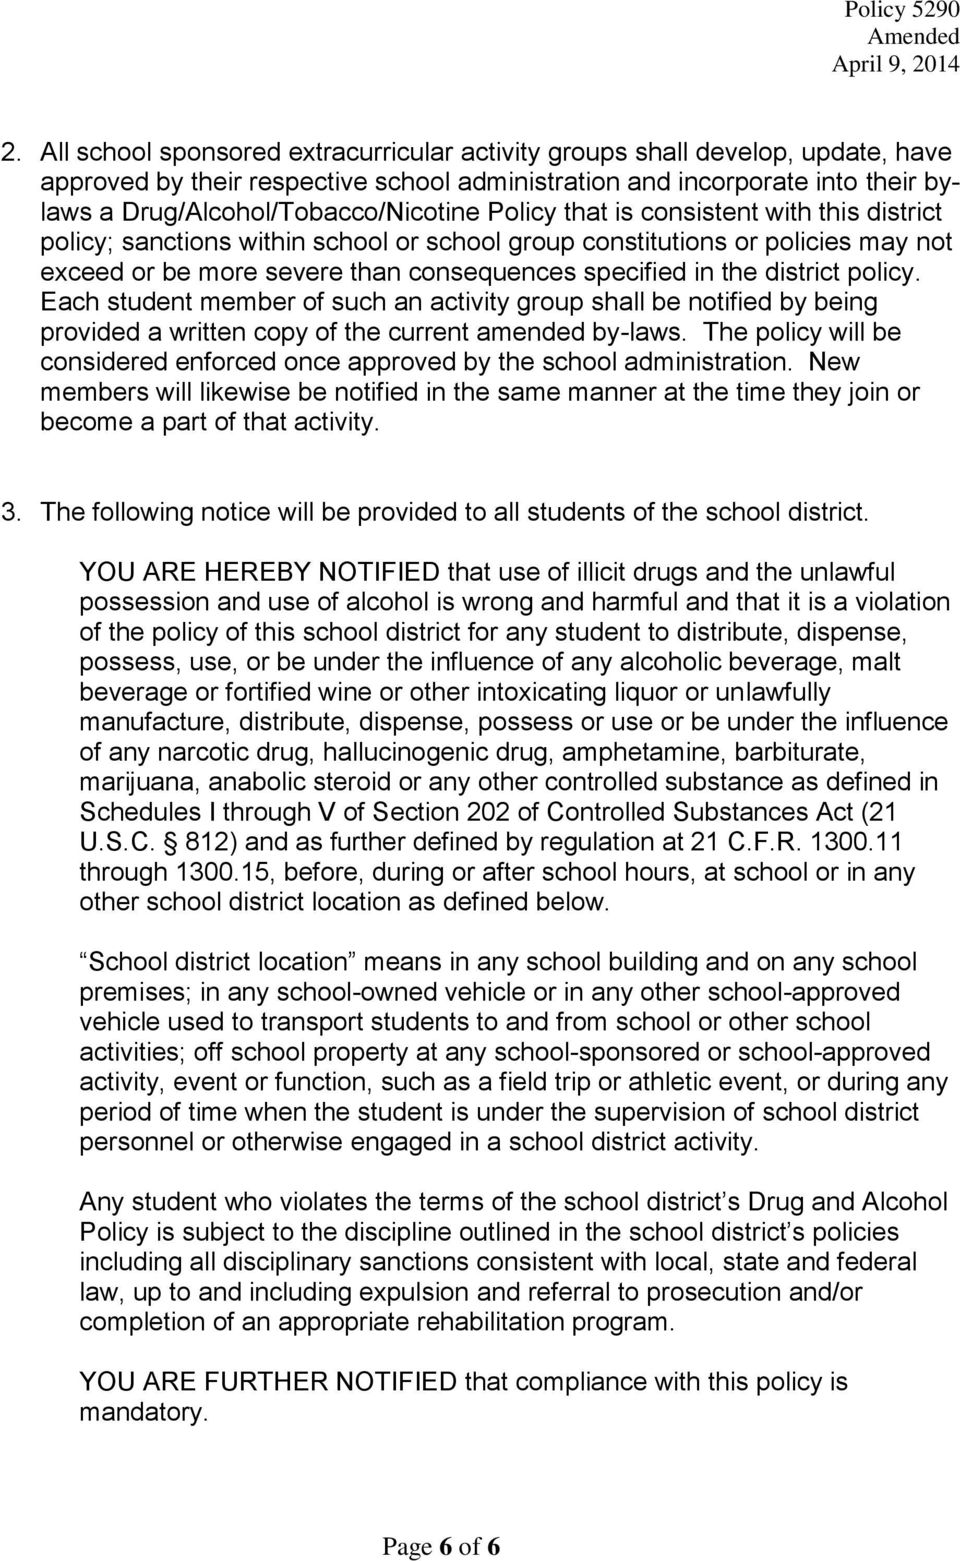 specified in the district policy. Each student member of such an activity group shall be notified by being provided a written copy of the current amended by-laws.